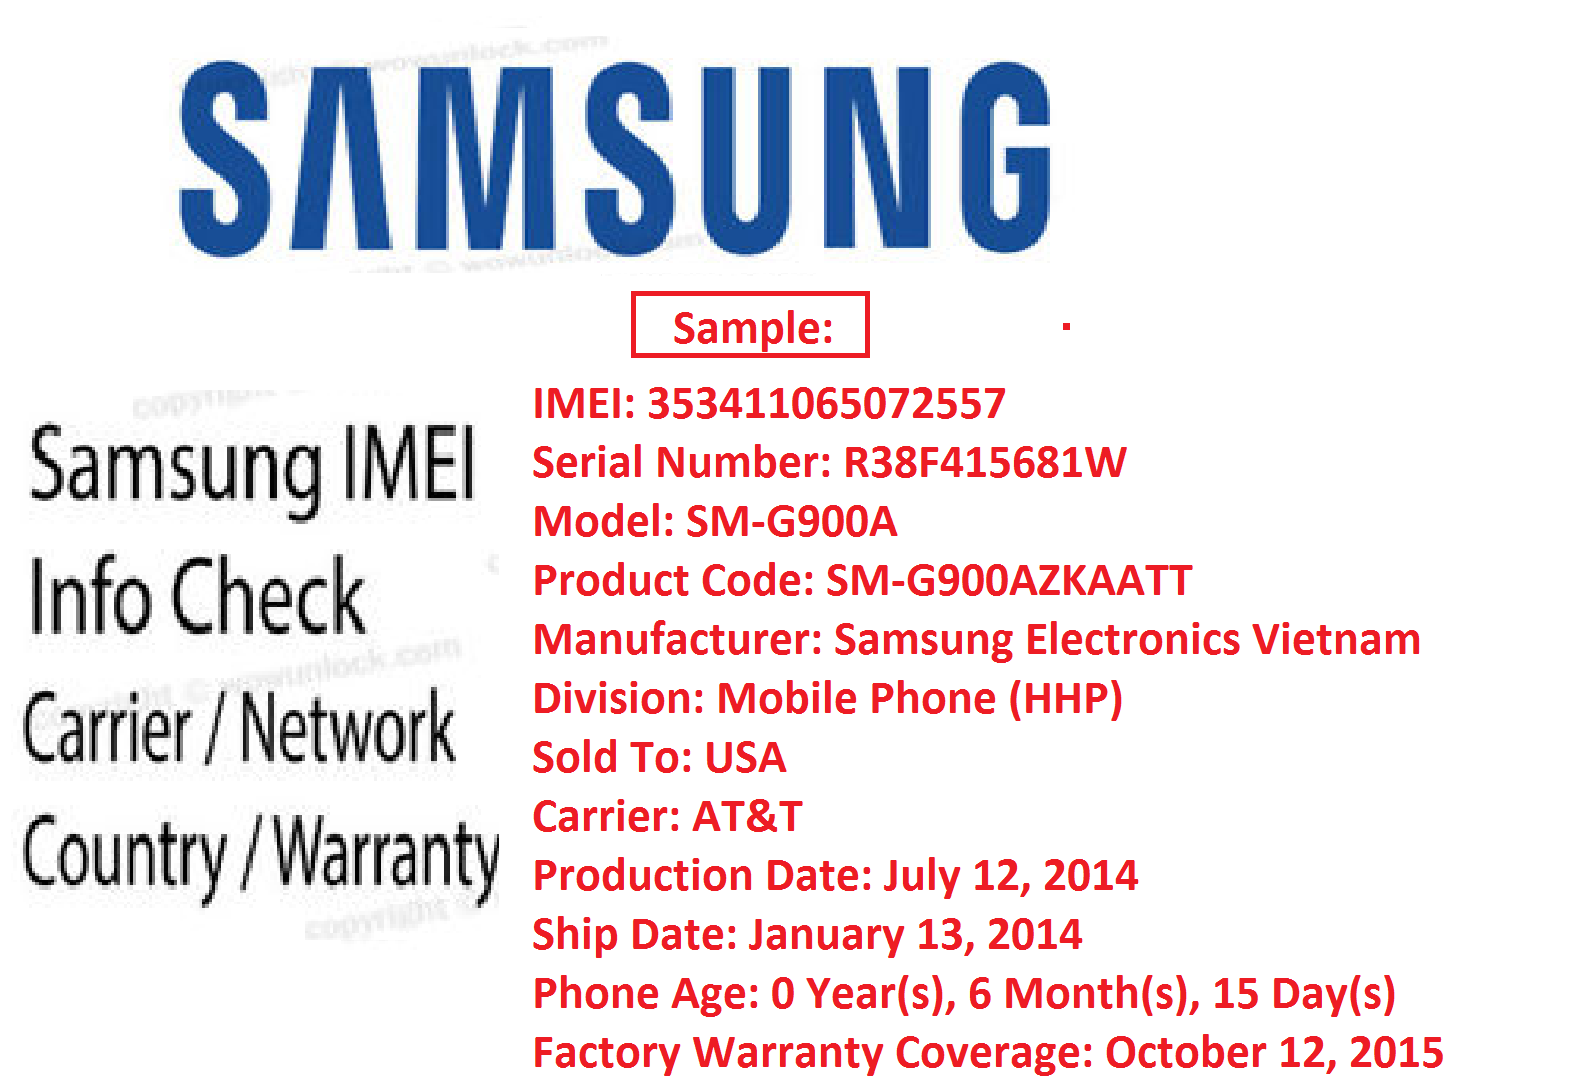 SAMSUNG FULL IMEI INFO CHECK REPORT Country Carrier Warranty - FAST